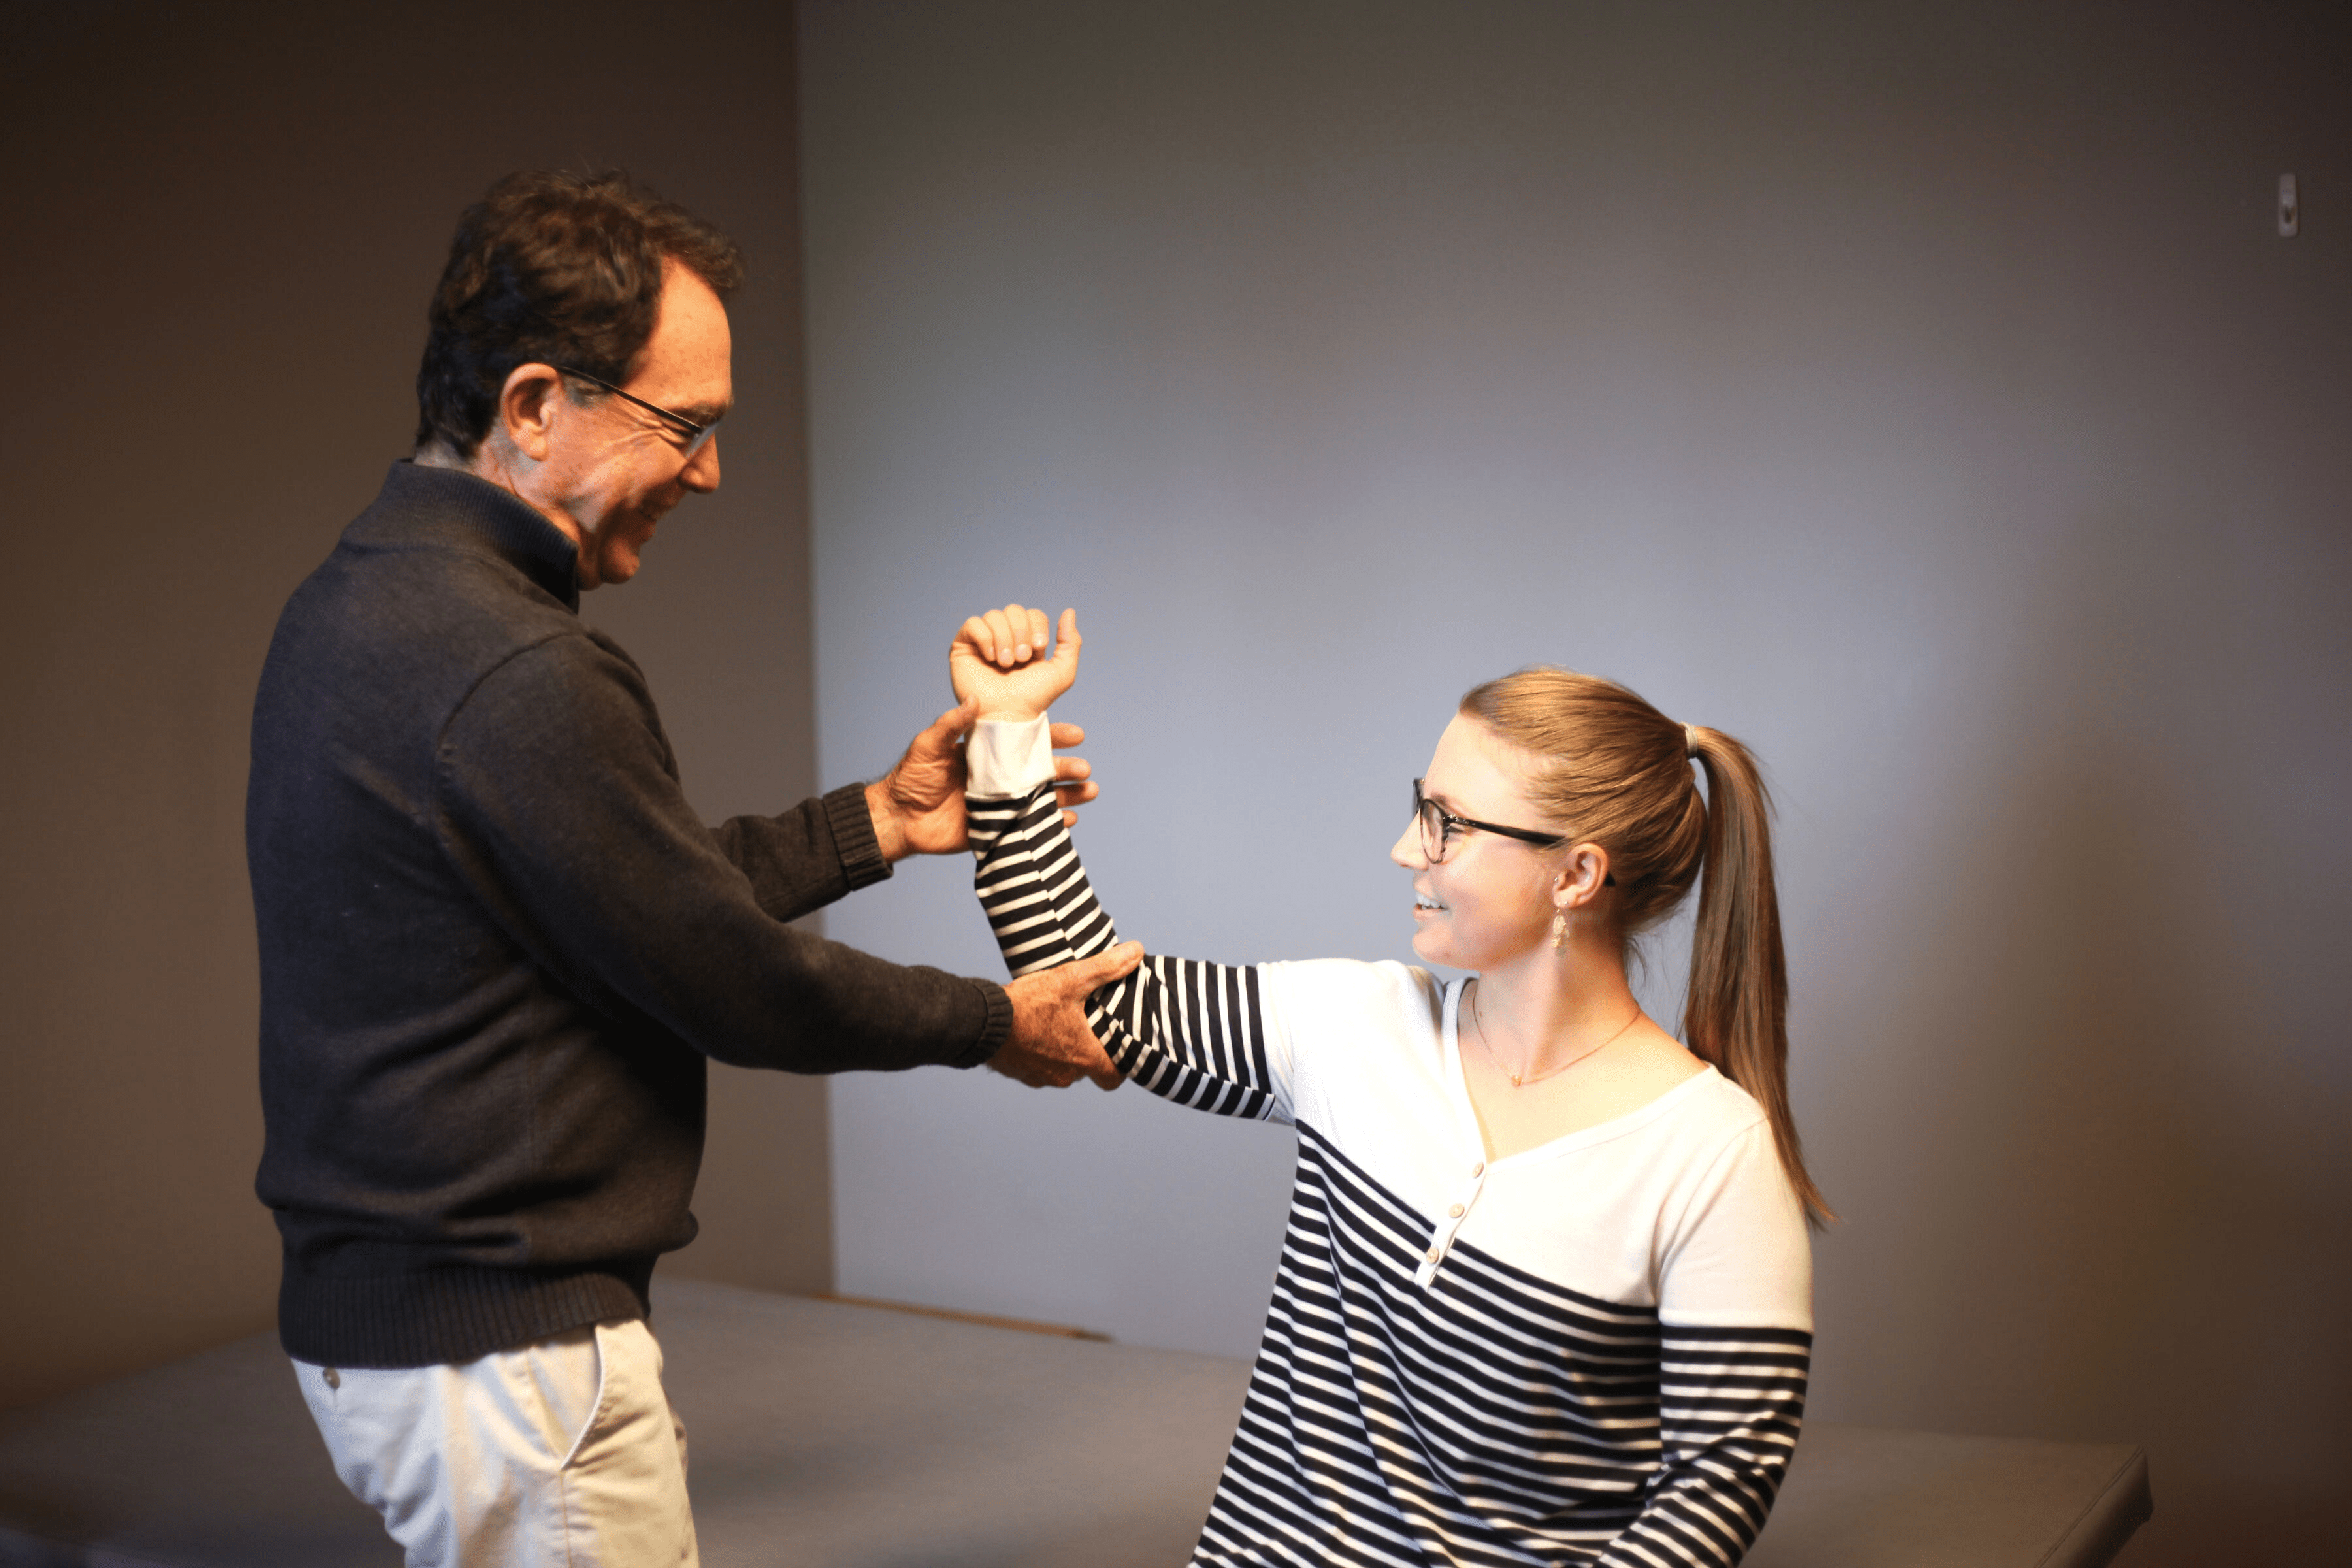 A physical therapy testing a patient's arm movement.